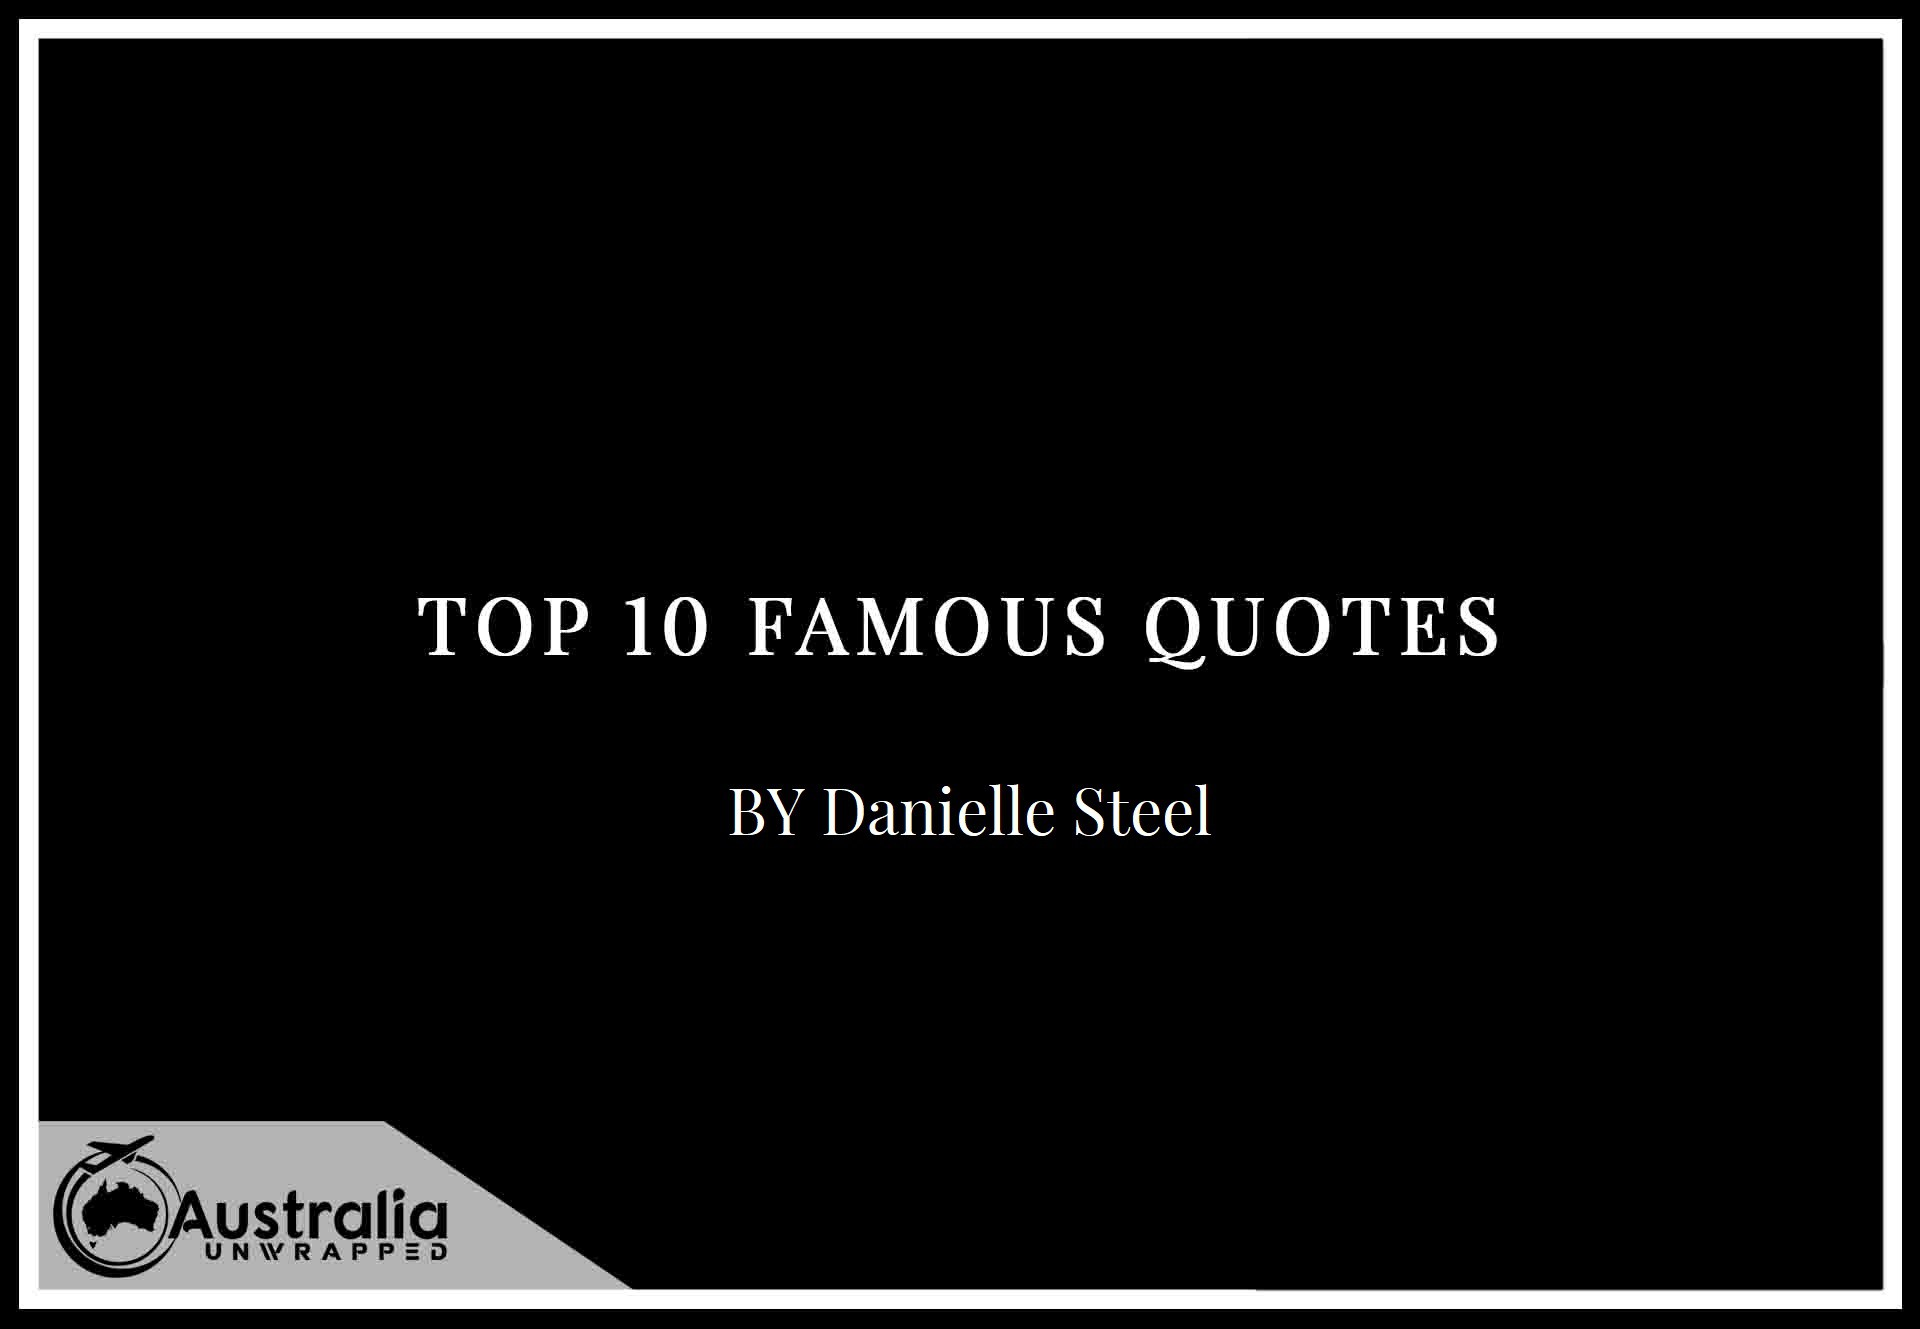 Top 10 Famous Quotes by Author Danielle Steel